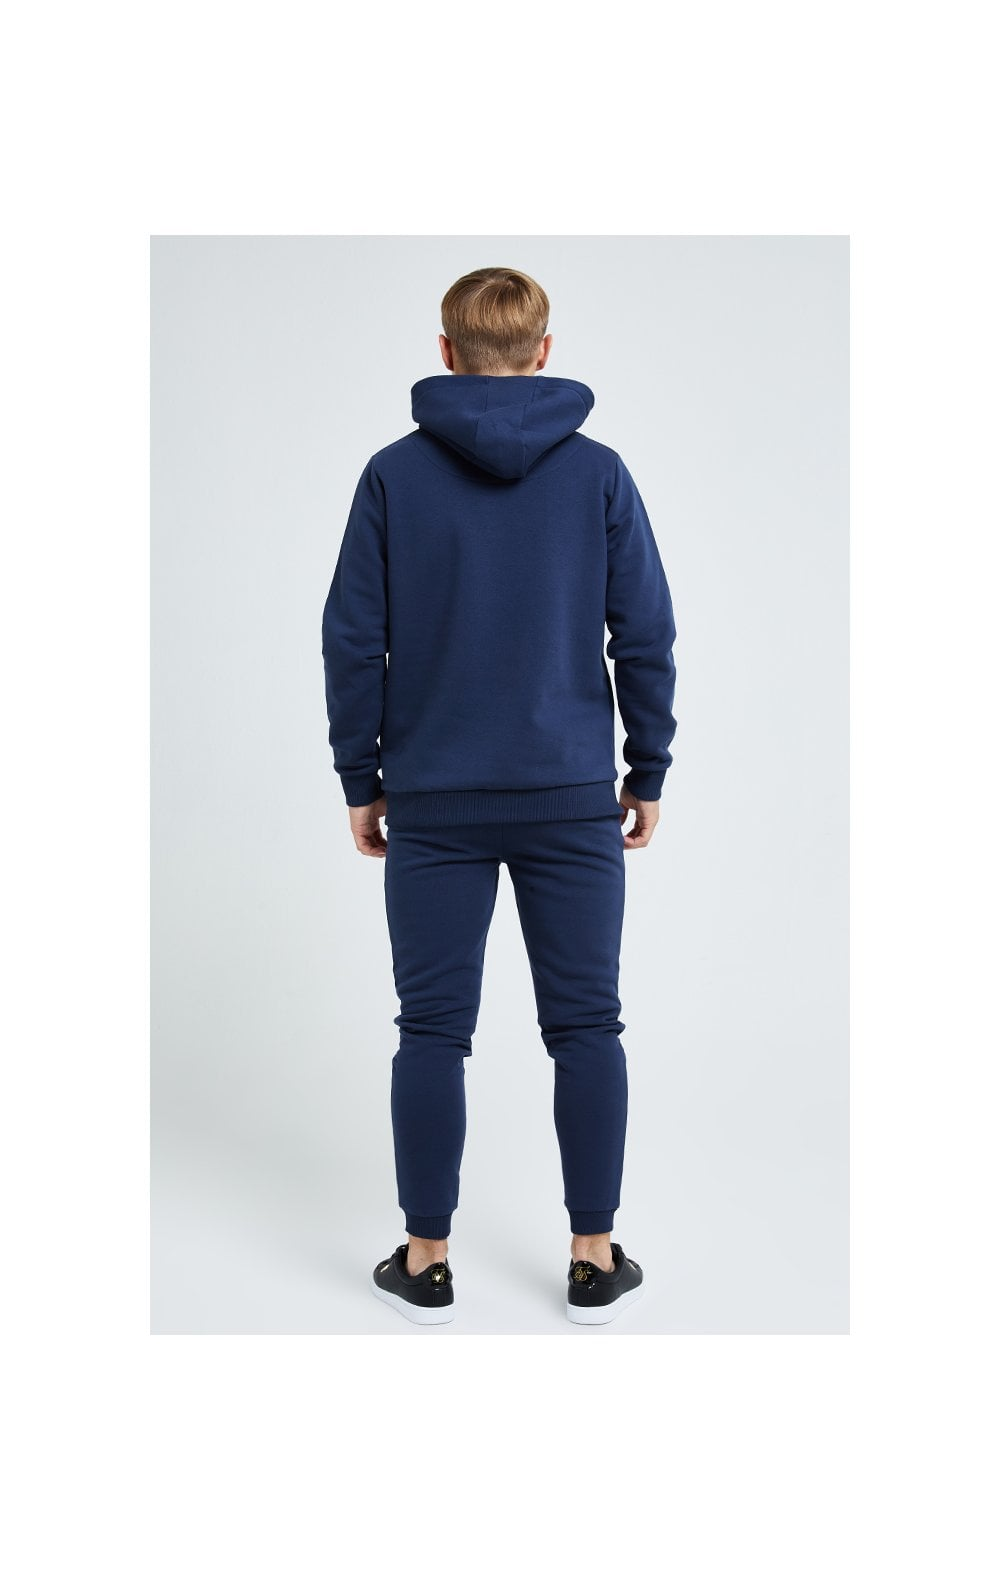 Load image into Gallery viewer, Illusive London Core Overhead Hoodie - Navy (5)